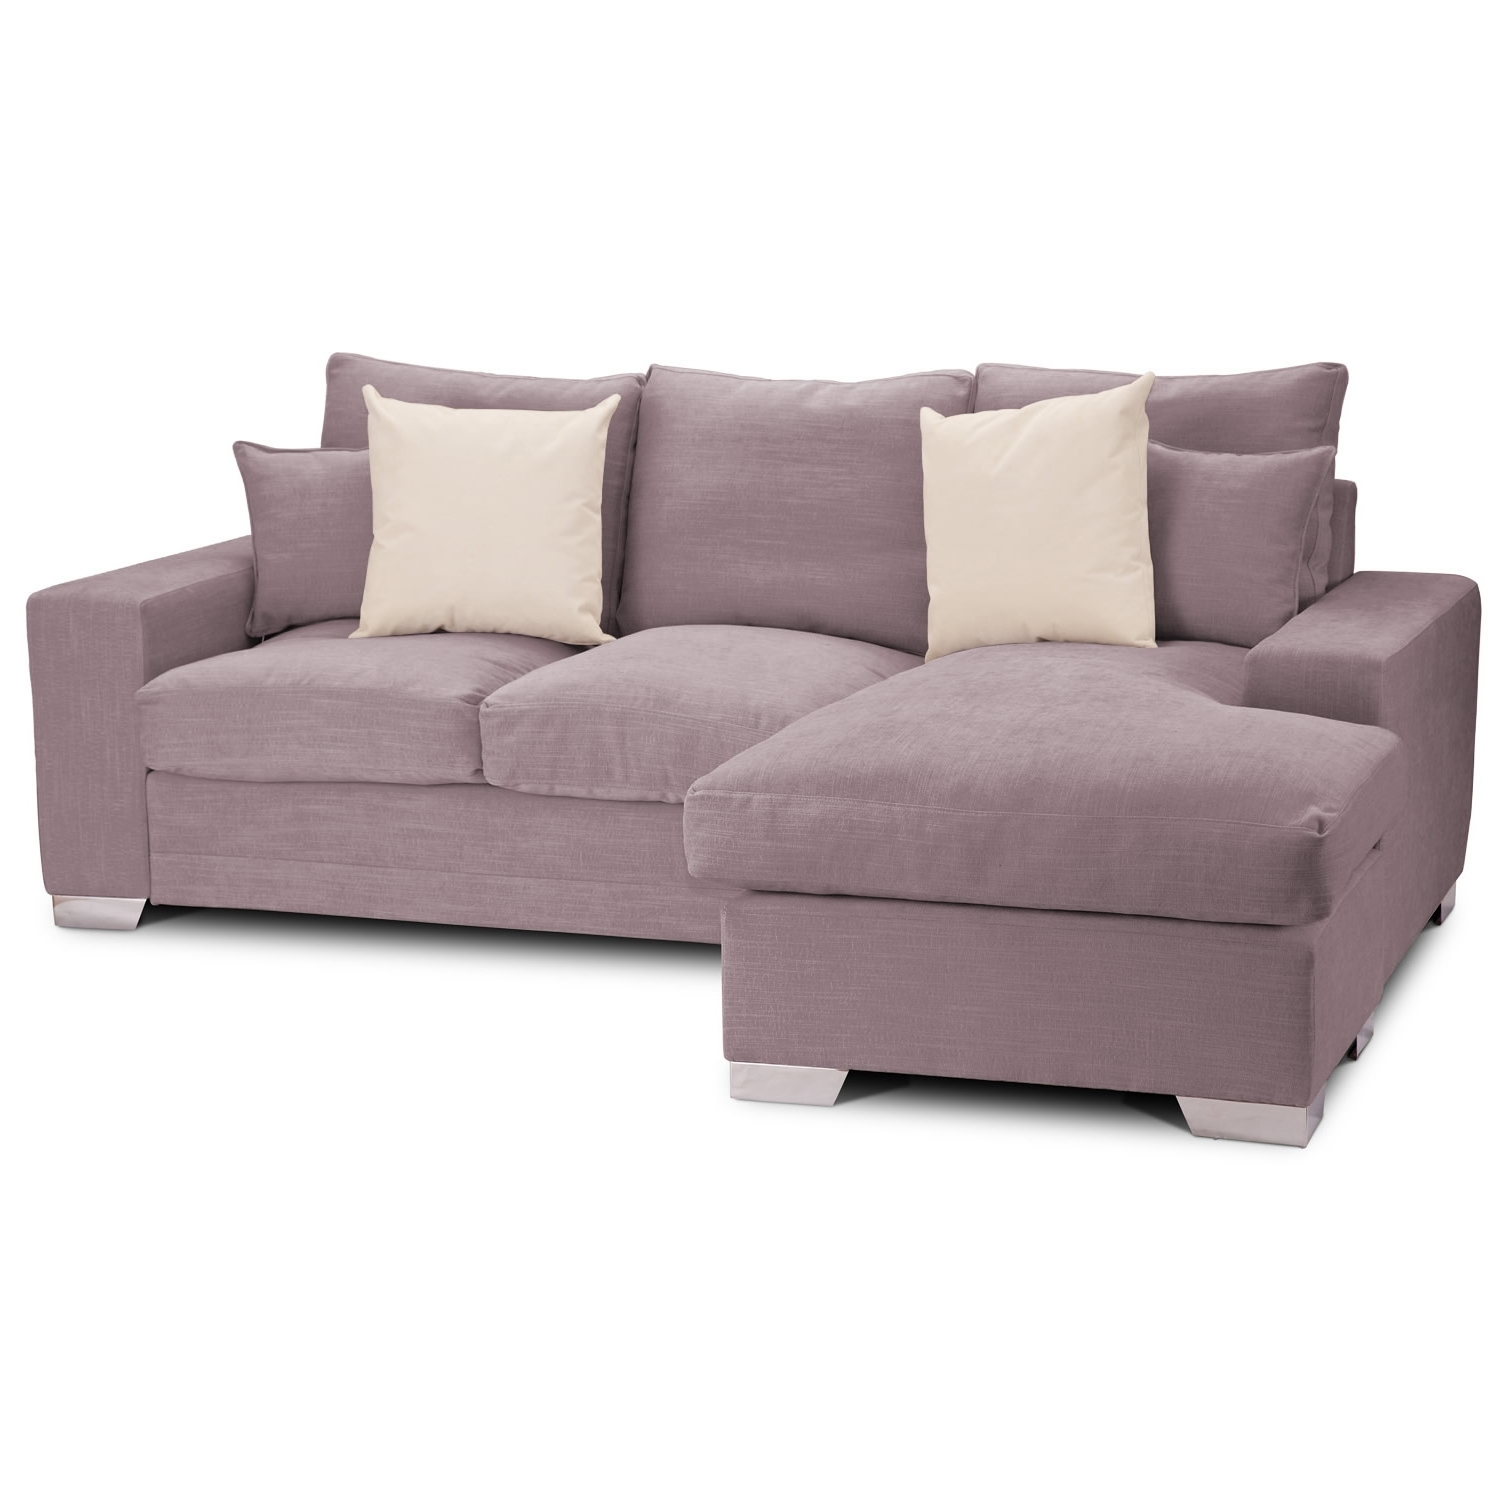 Sofa ~ Astonishing Velvet L Shaped Sofa Soft Gray Velvet Sofa With Regarding Well Known L Shaped Couches With Chaise (View 13 of 15)